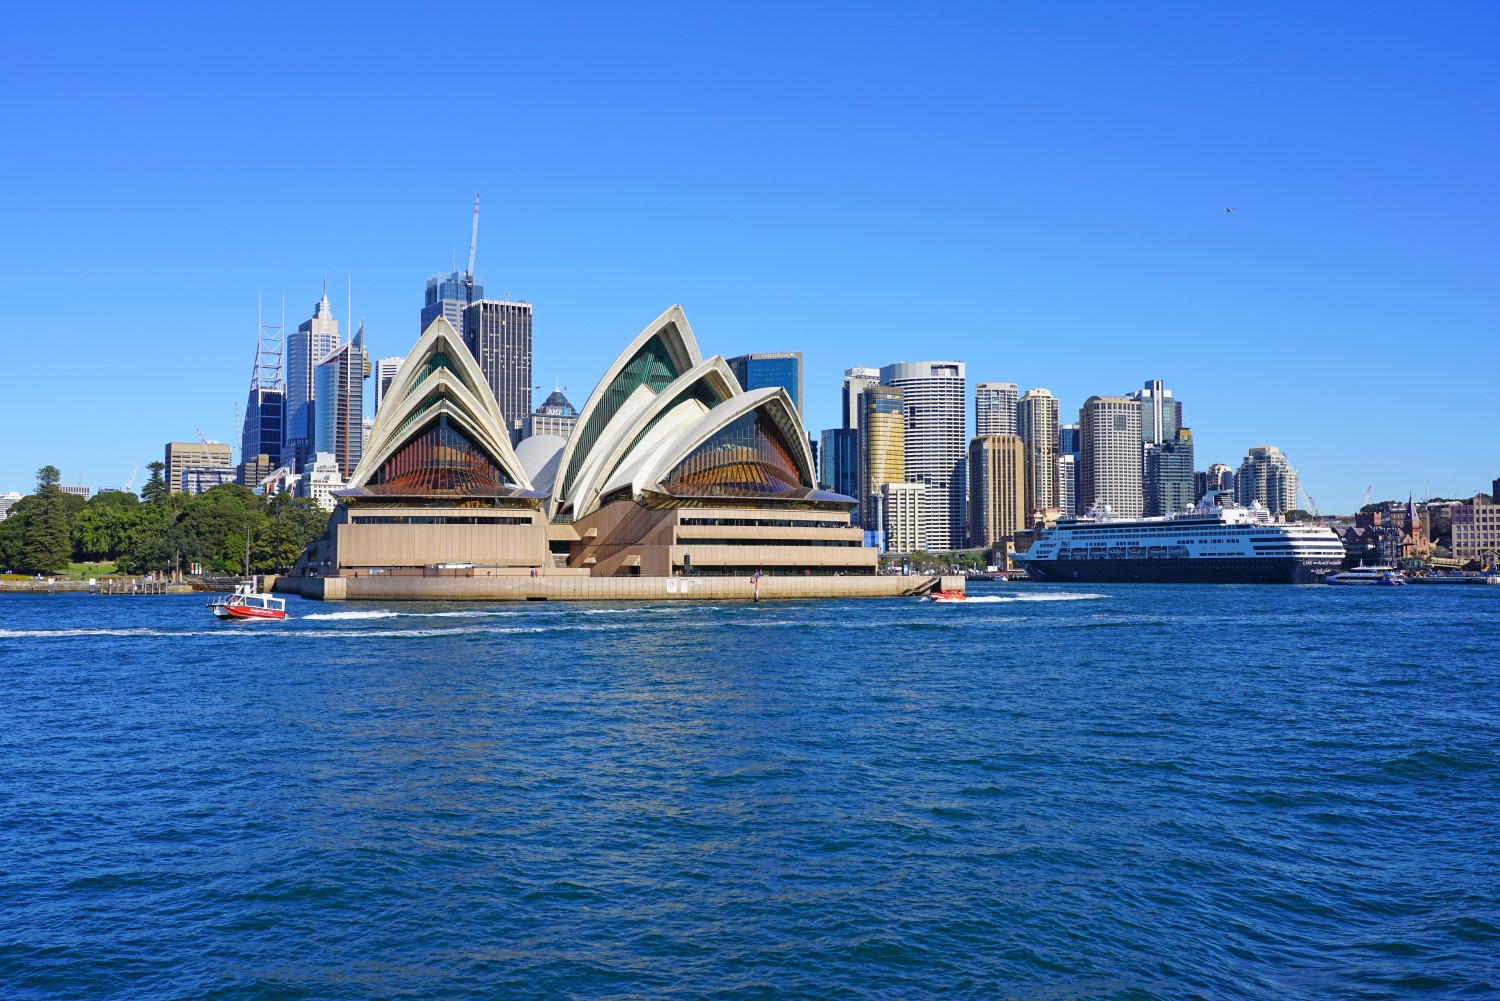 Australia-Listed Non-Bank Broker SelfWealth to Add Crypto to its Platform